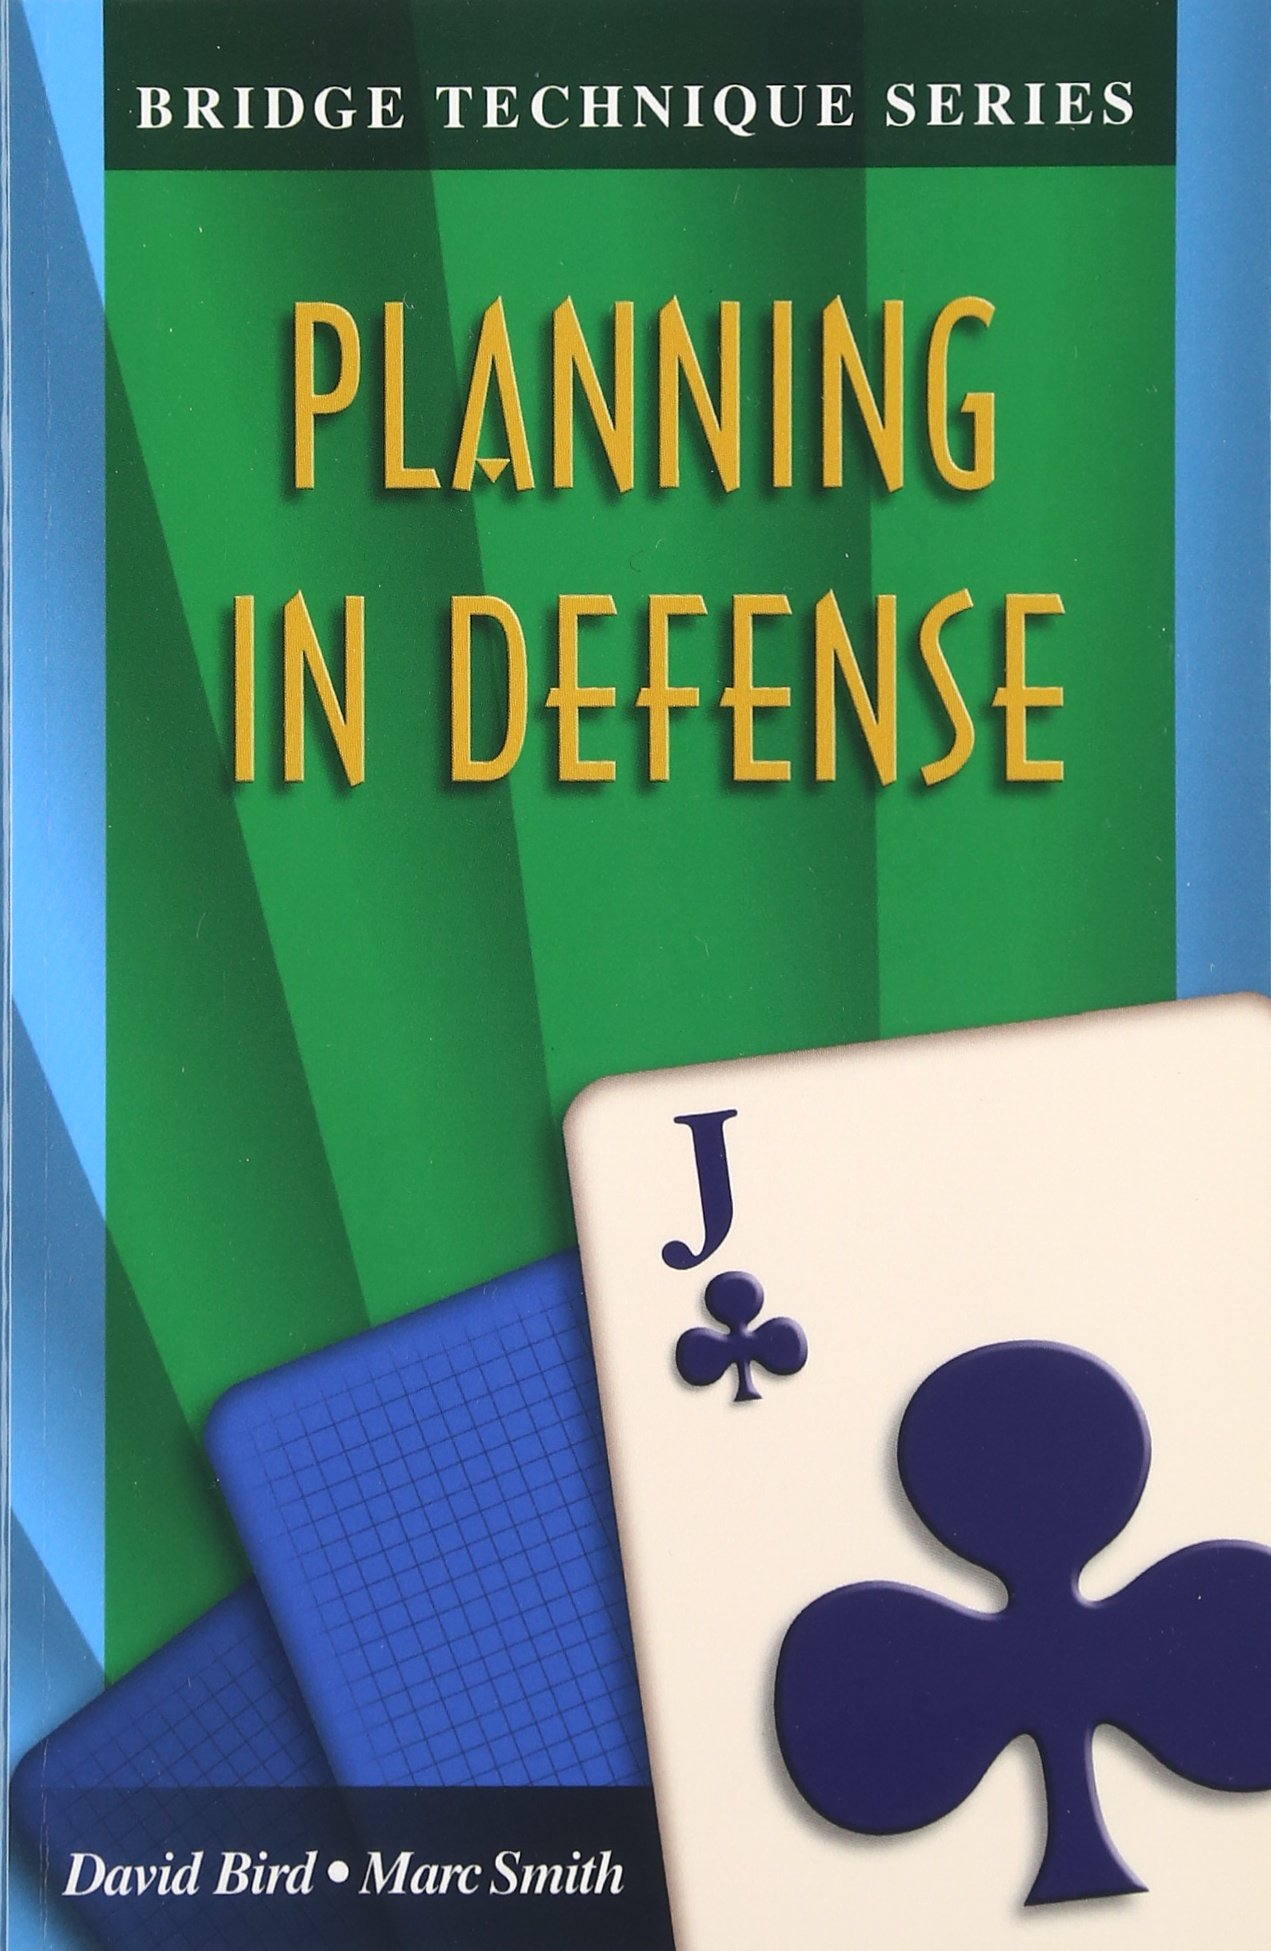 Download Bridge Technique 11: Planning in Defense ebook